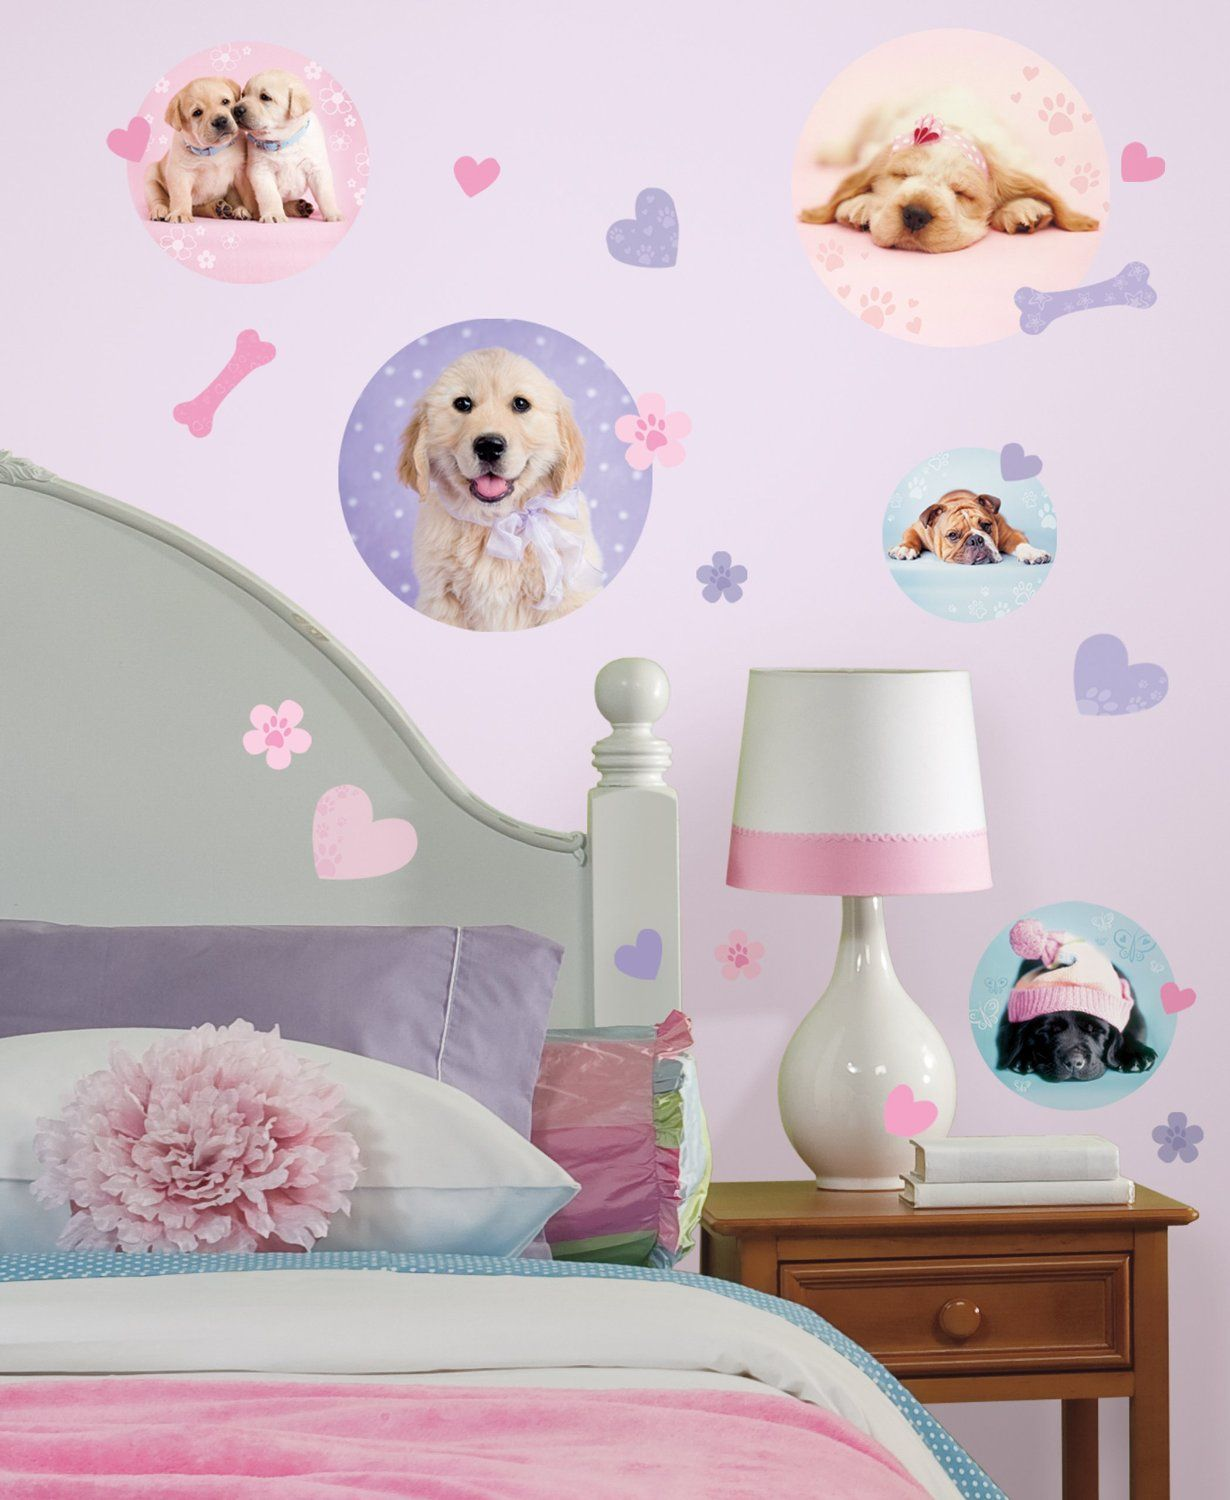 Room Ideas With Purplefor Teen Girls 2019 Puppy Dogs Wall Decals Stickers Pink Purple for Girls | Kids Room